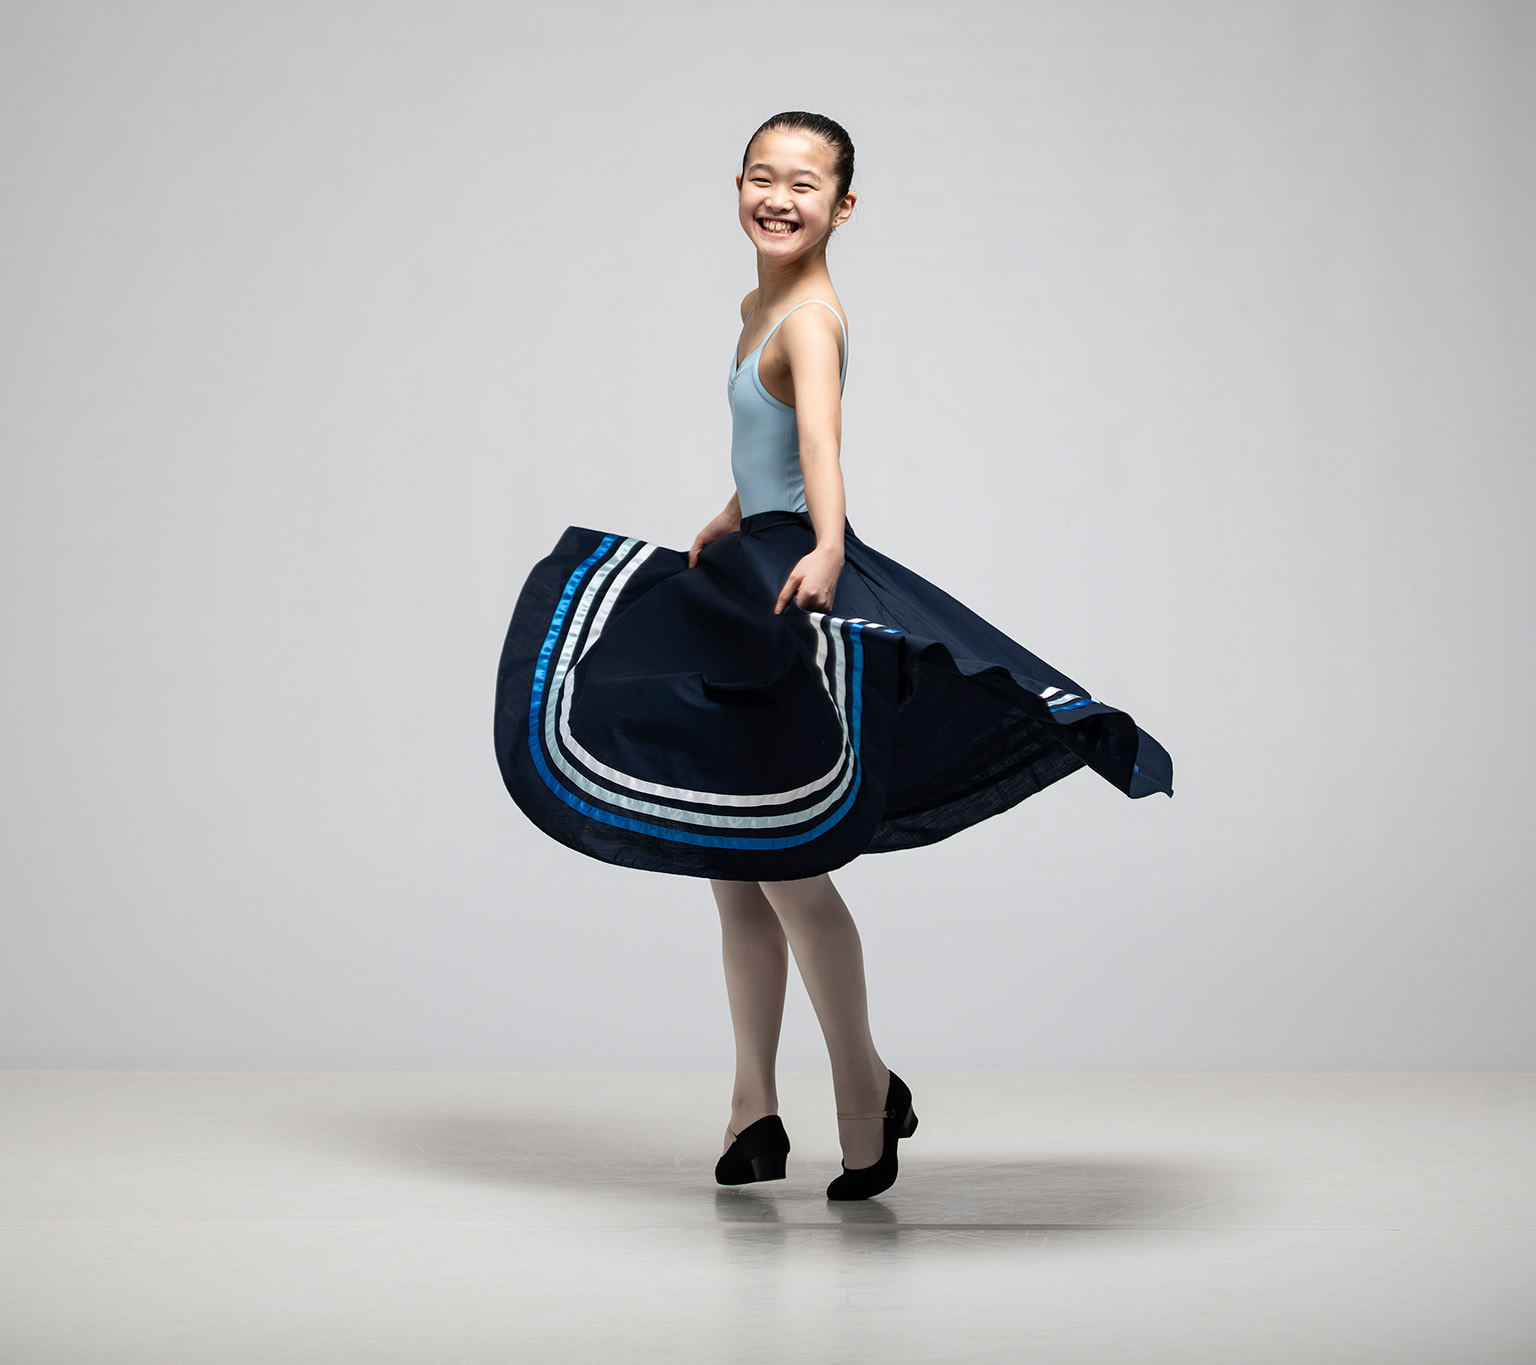 Dancer with large striped skirt